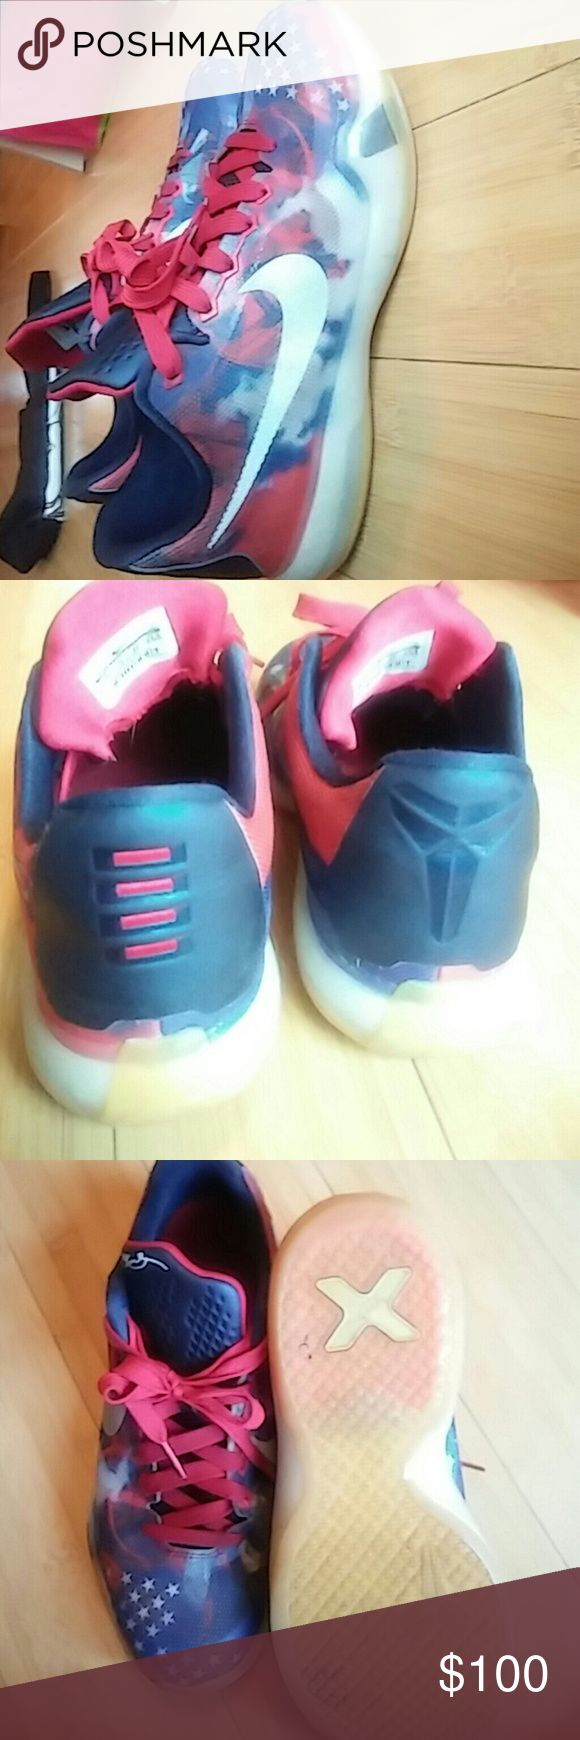 Nike Kobe 4th of July edition used Nike Kobe used but new some marks but not noticeable 6.5 for kids box not included Nike Shoes Athletic Shoes